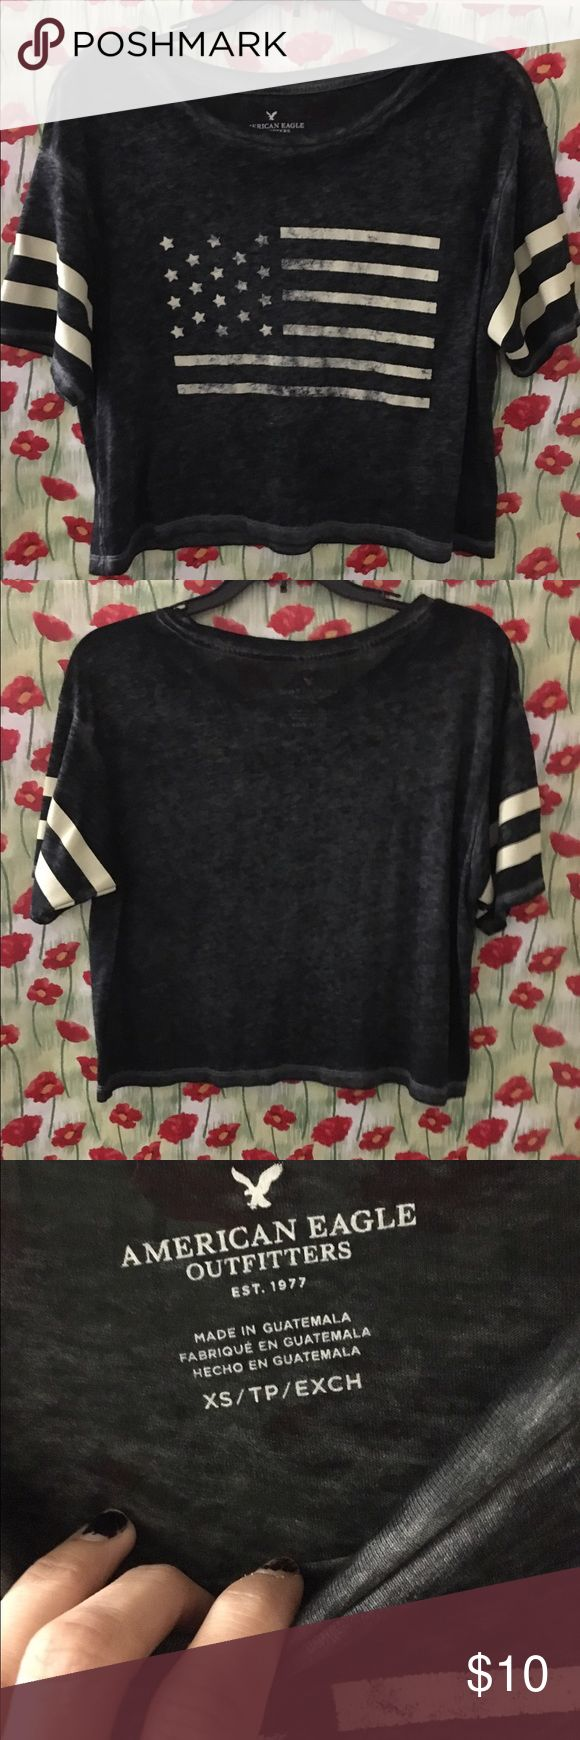 American Eagle Outfitters Flowy T shirt American Eagle Outfitters Flowy T shirt. Preowned excellent Condition. American Eagle Outfitters Tops Crop Tops